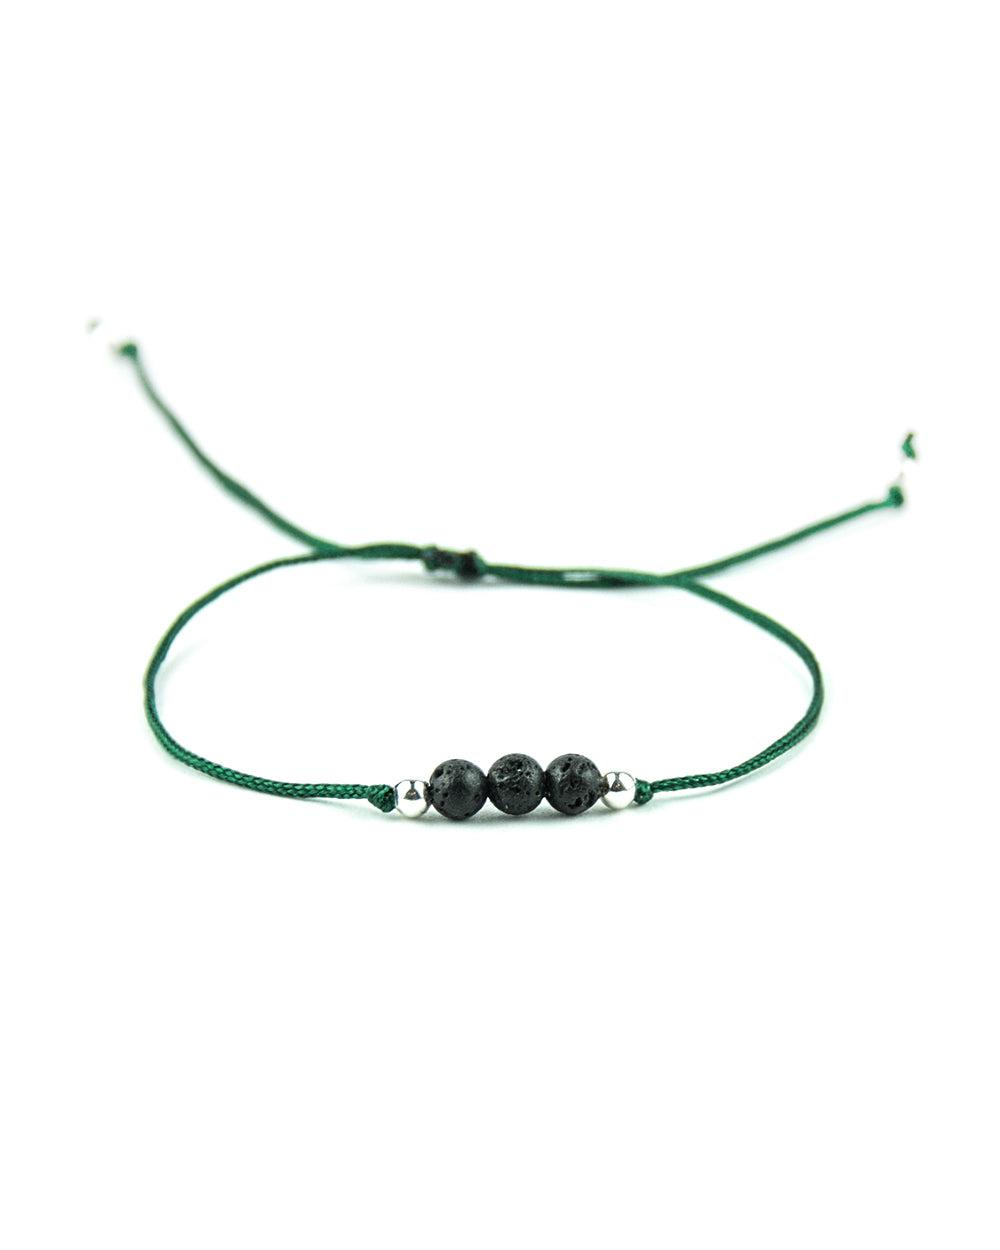 .... Grünes Everyday Companion Armband mit Basalt Lava .. Green Everyday Companion Bracelet with Basalt Lava ....